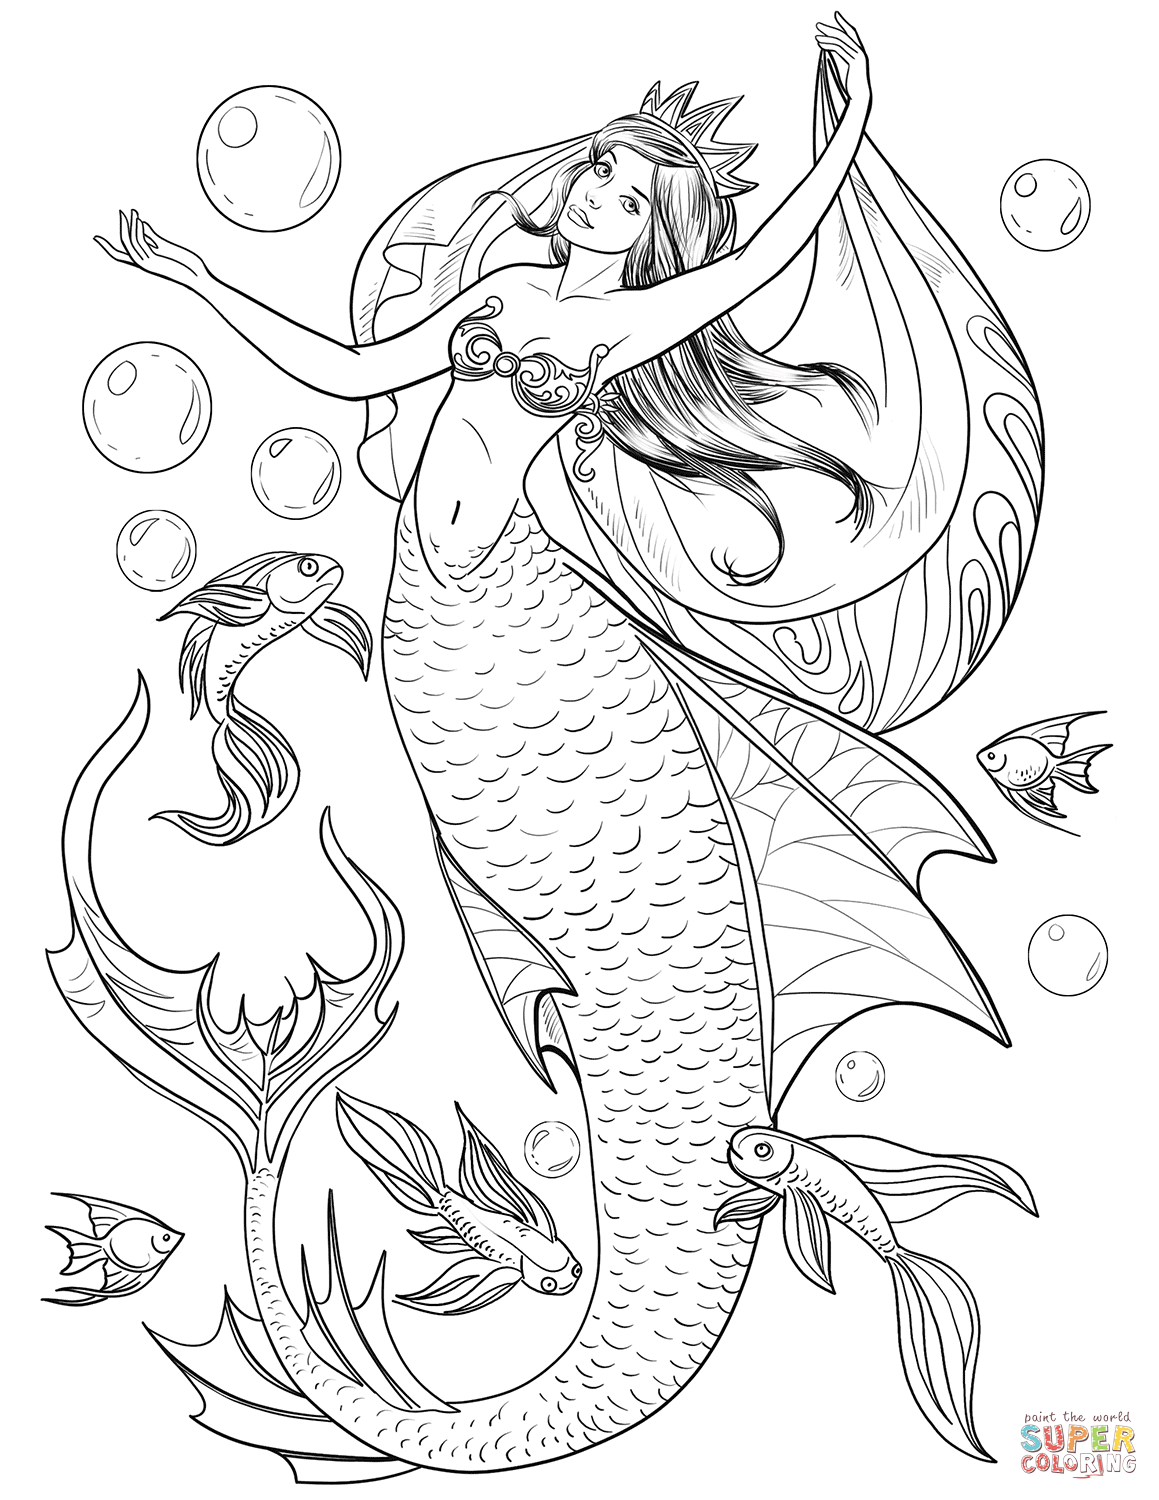 Mermaid Coloring Page Free Printable Coloring Pages Mermaid Coloring Book Mermaid Coloring Mermaid Coloring Pages